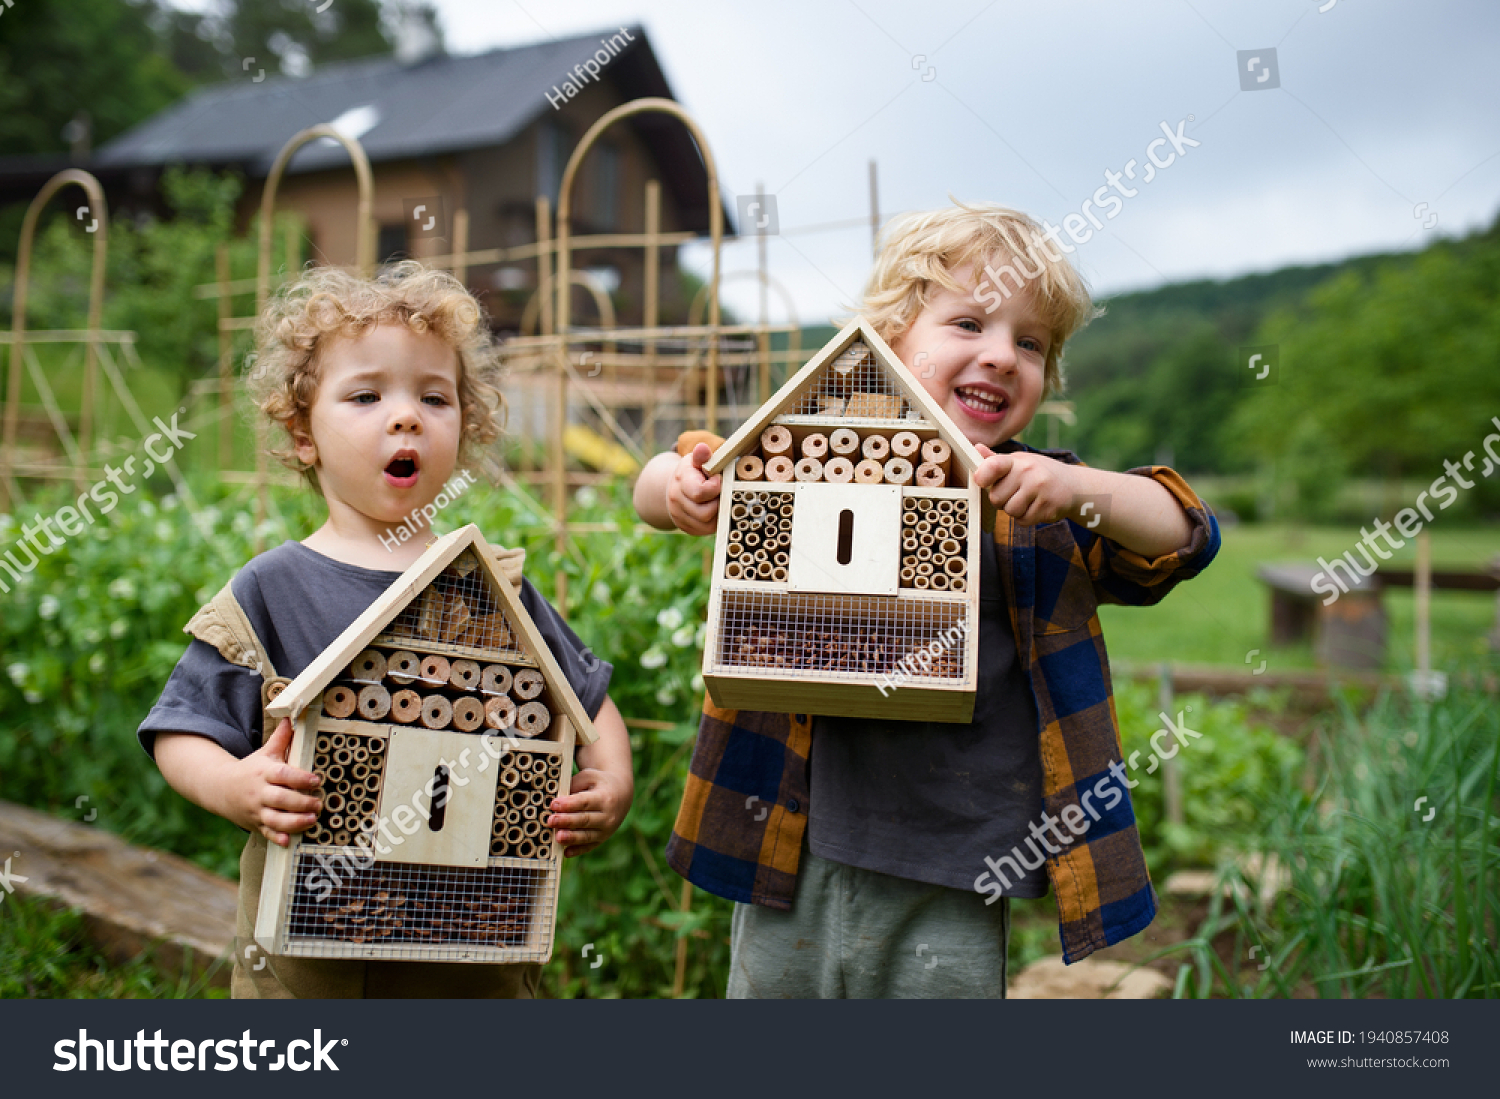 Small boy and girl holding bug and insect hotel in garden, sustainable lifestyle. #1940857408